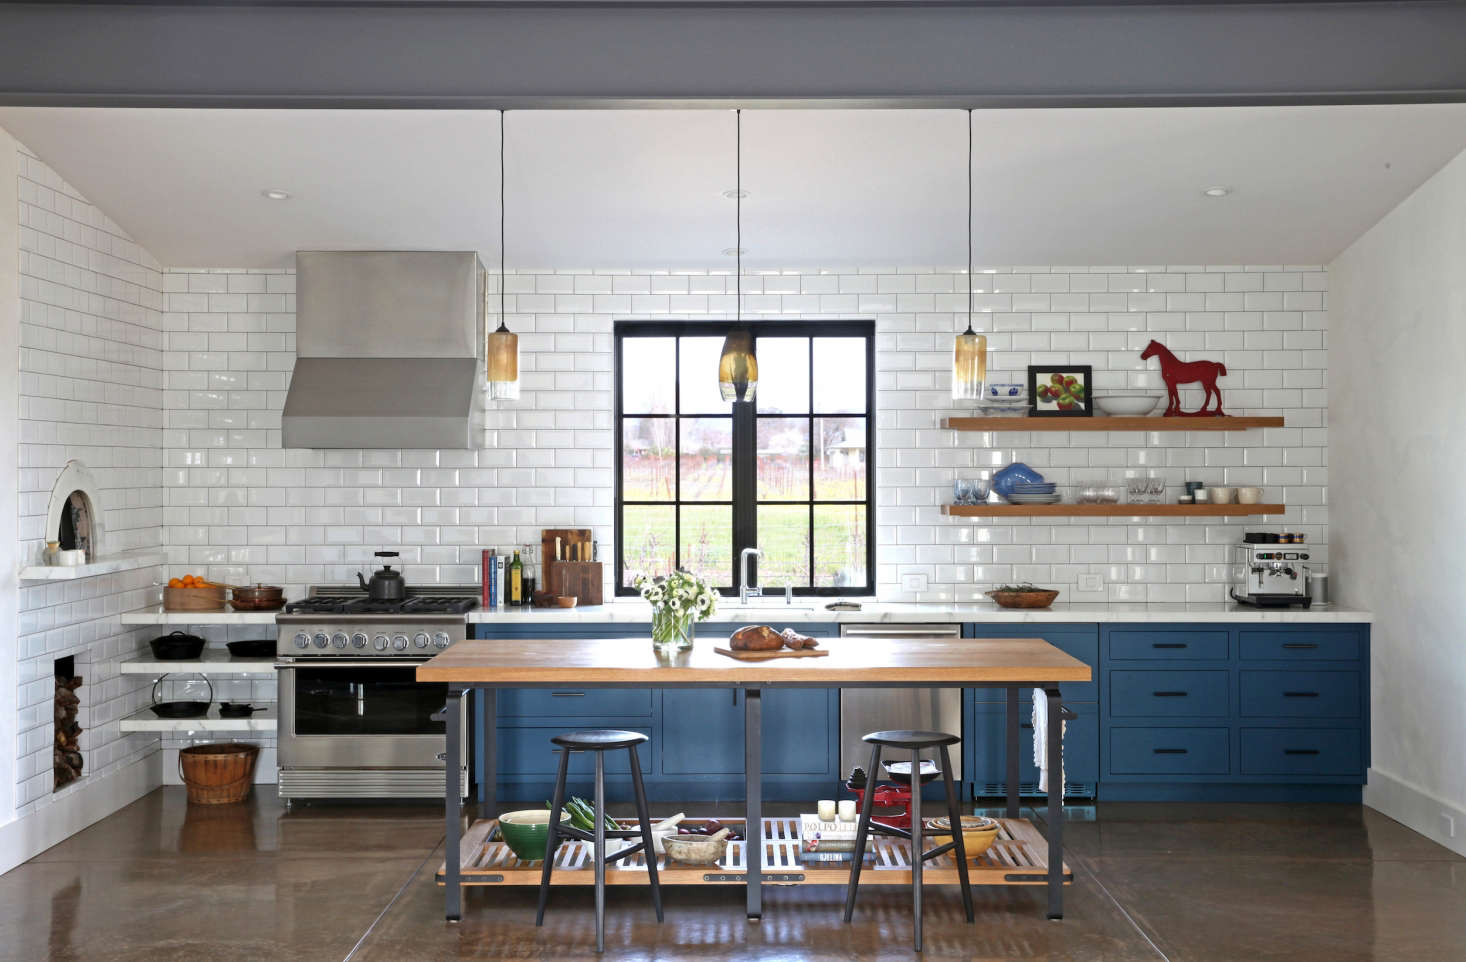 Built-in shelves, rather than cabinets, accommodate a generous range in In California Wine Country, A Modern Farmhouse for a Brit and a Texan.